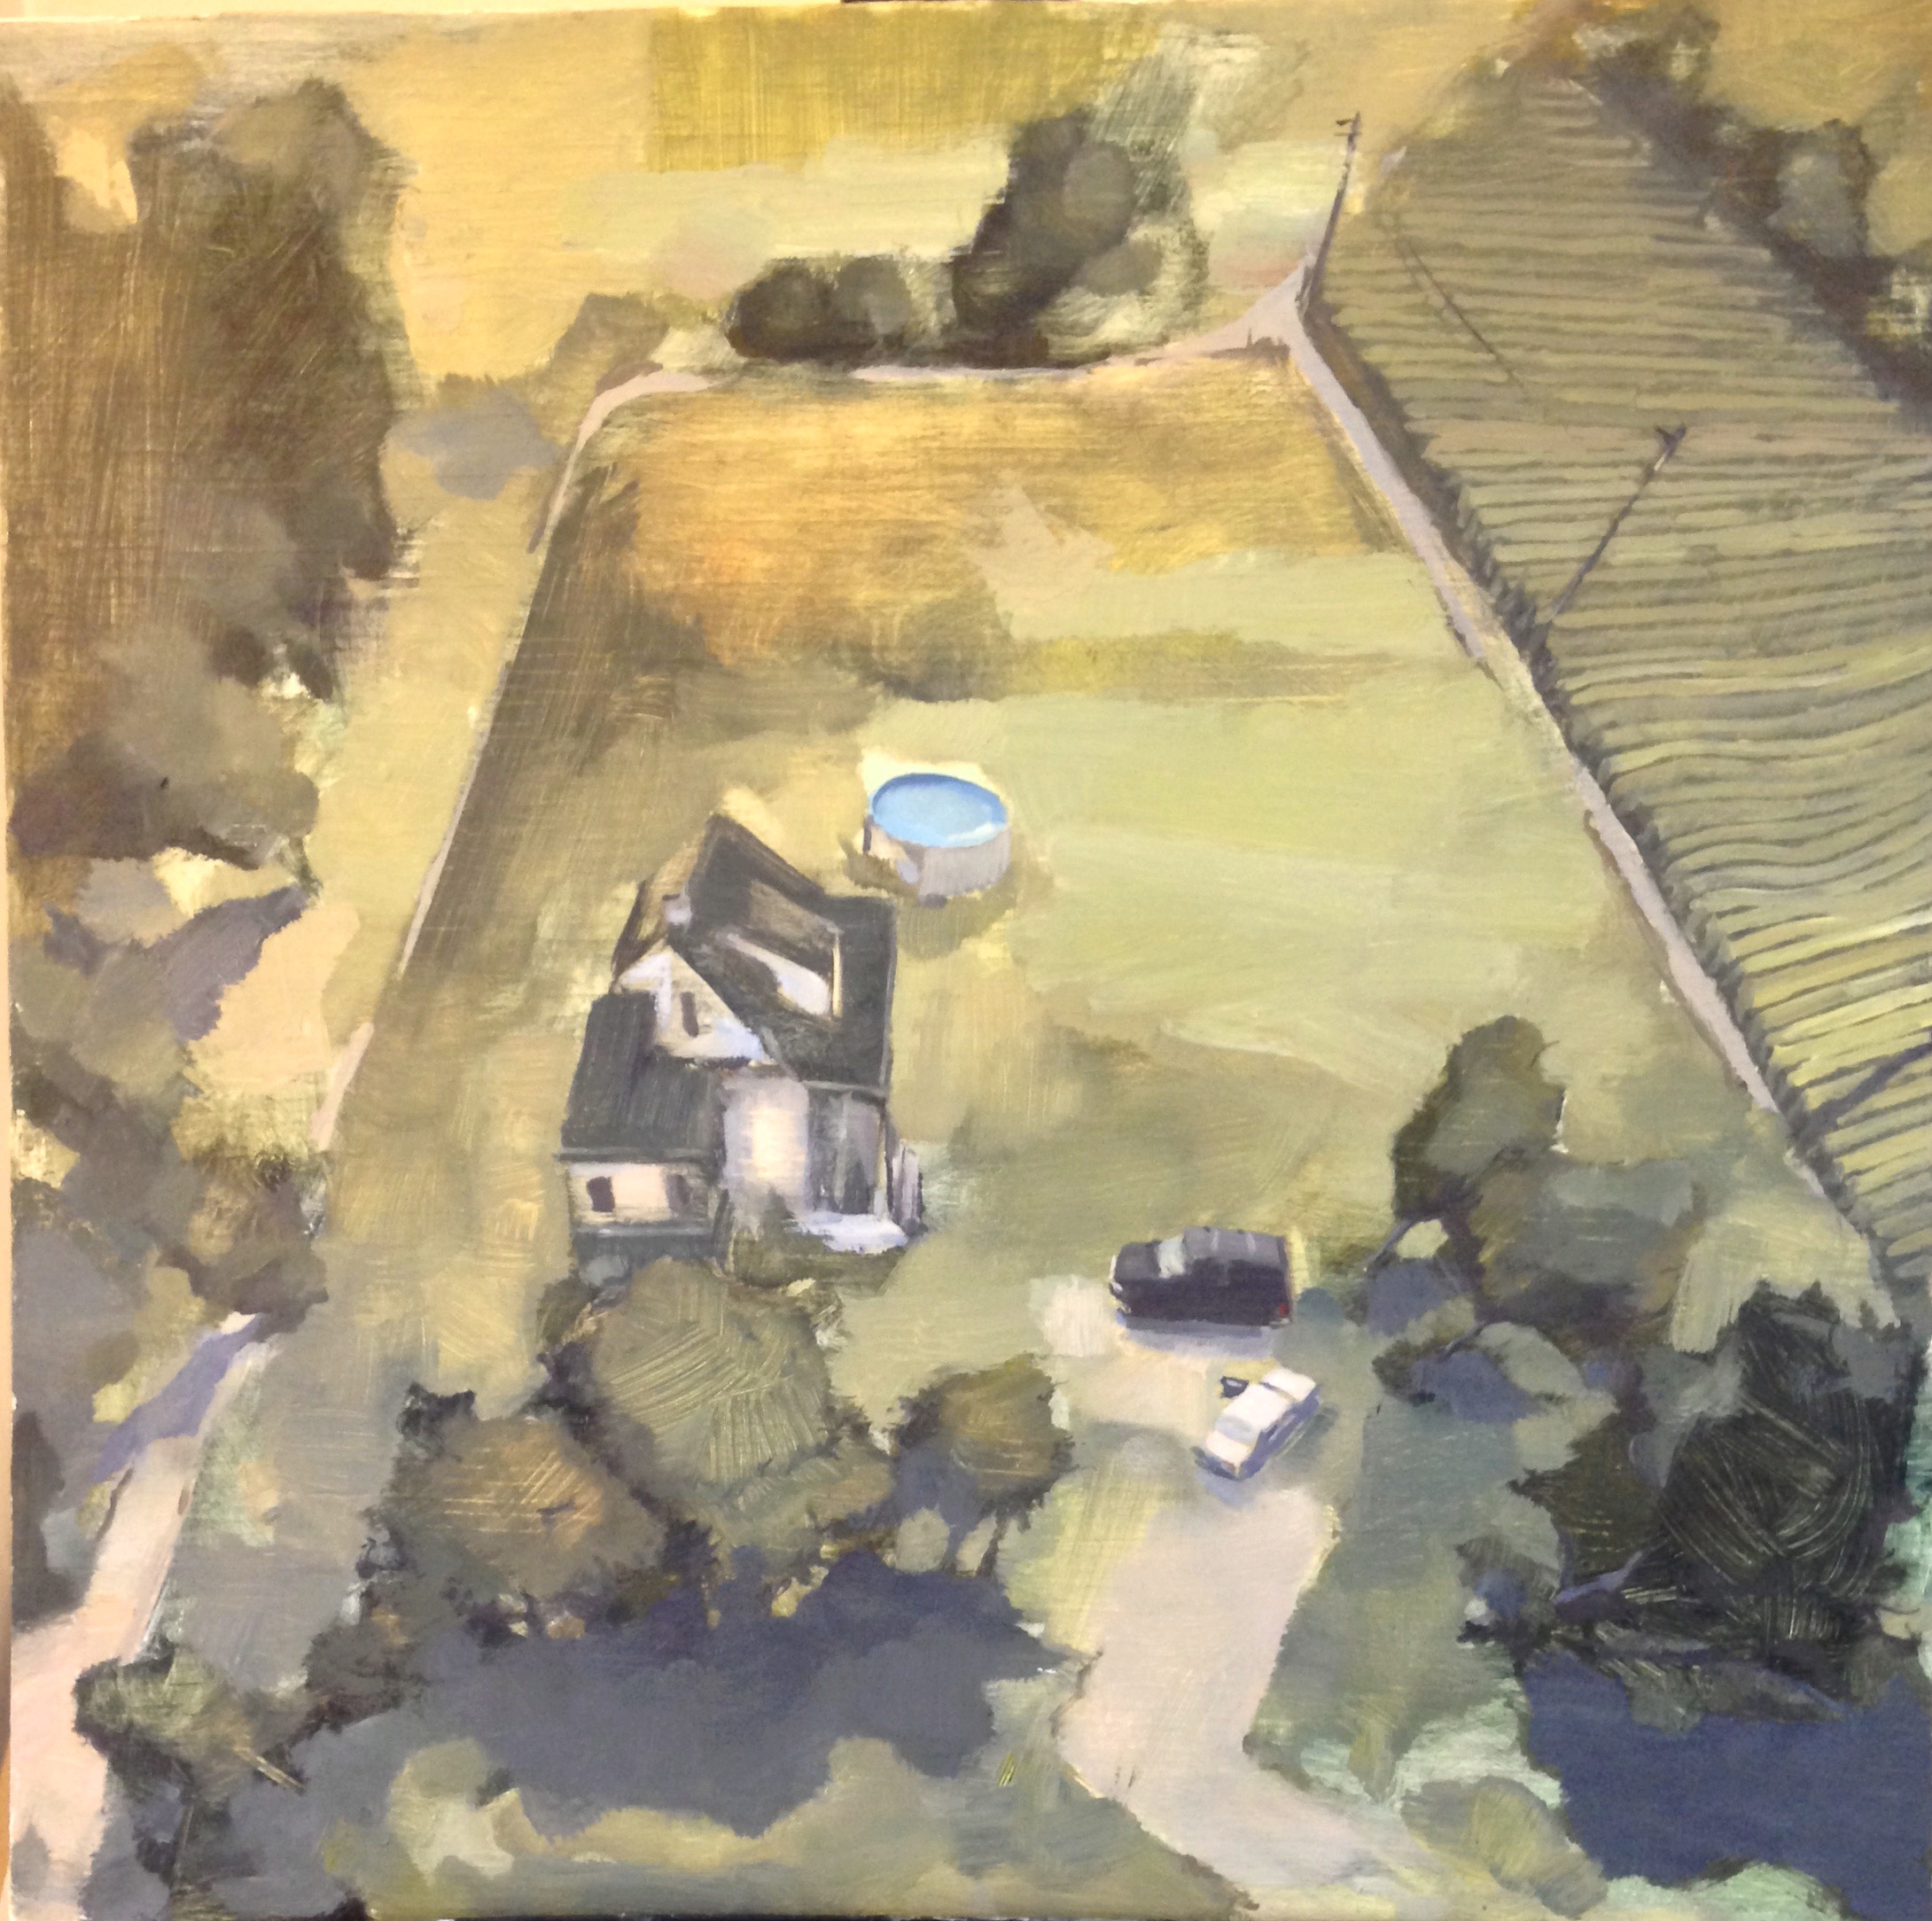 A Sudden Recollection of Time Spent in Morenci, MI. , Oil on Panel, 2'x2', 2015